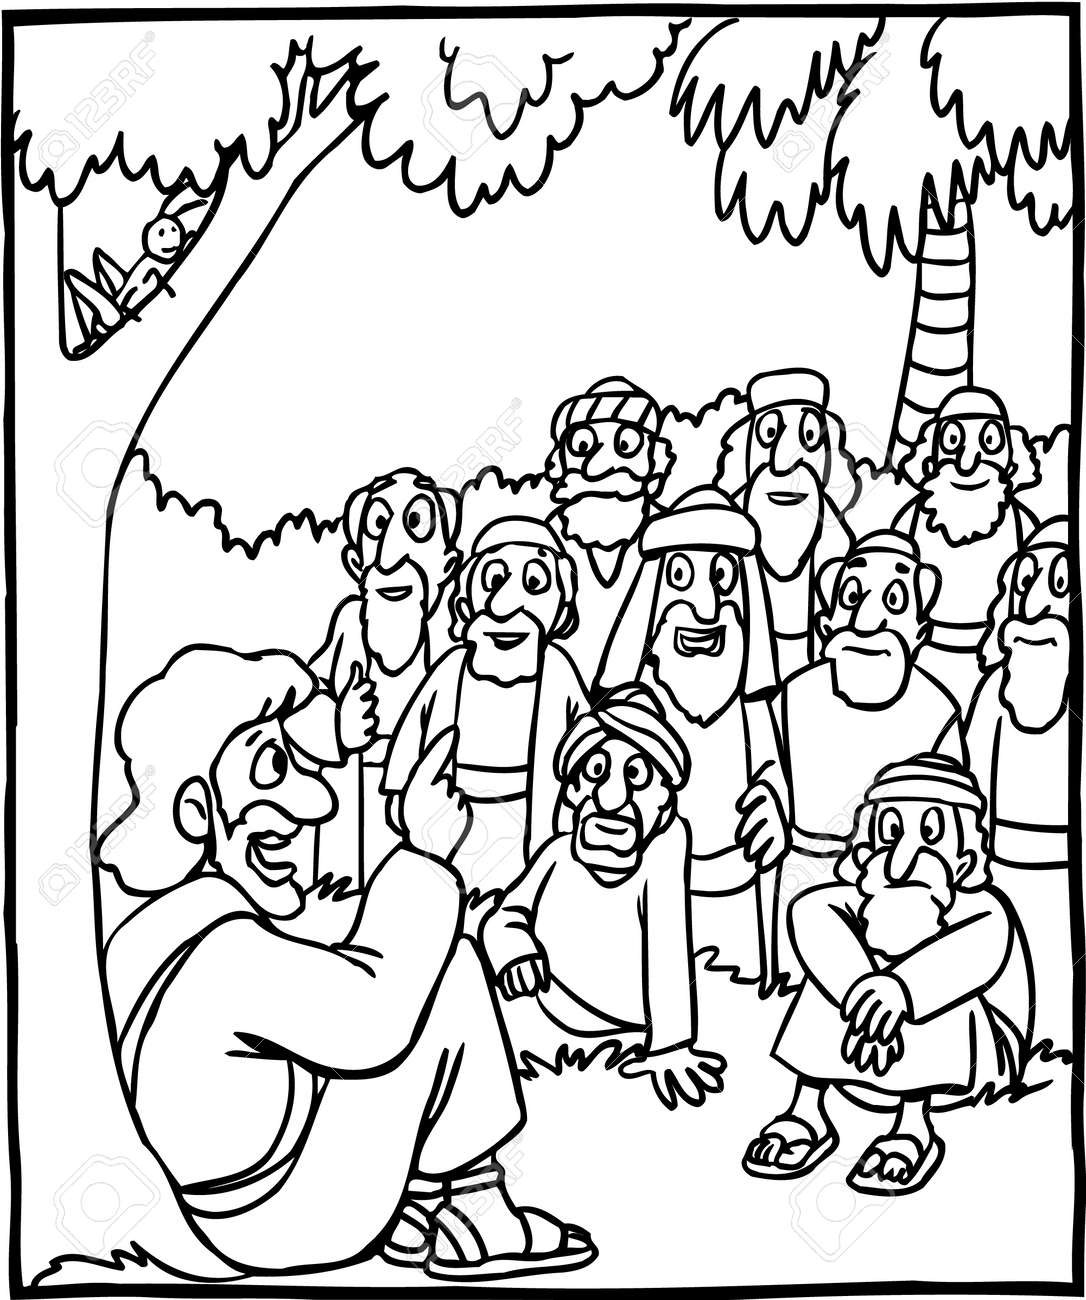 Coloring Page of Jesus Teaching Crowd